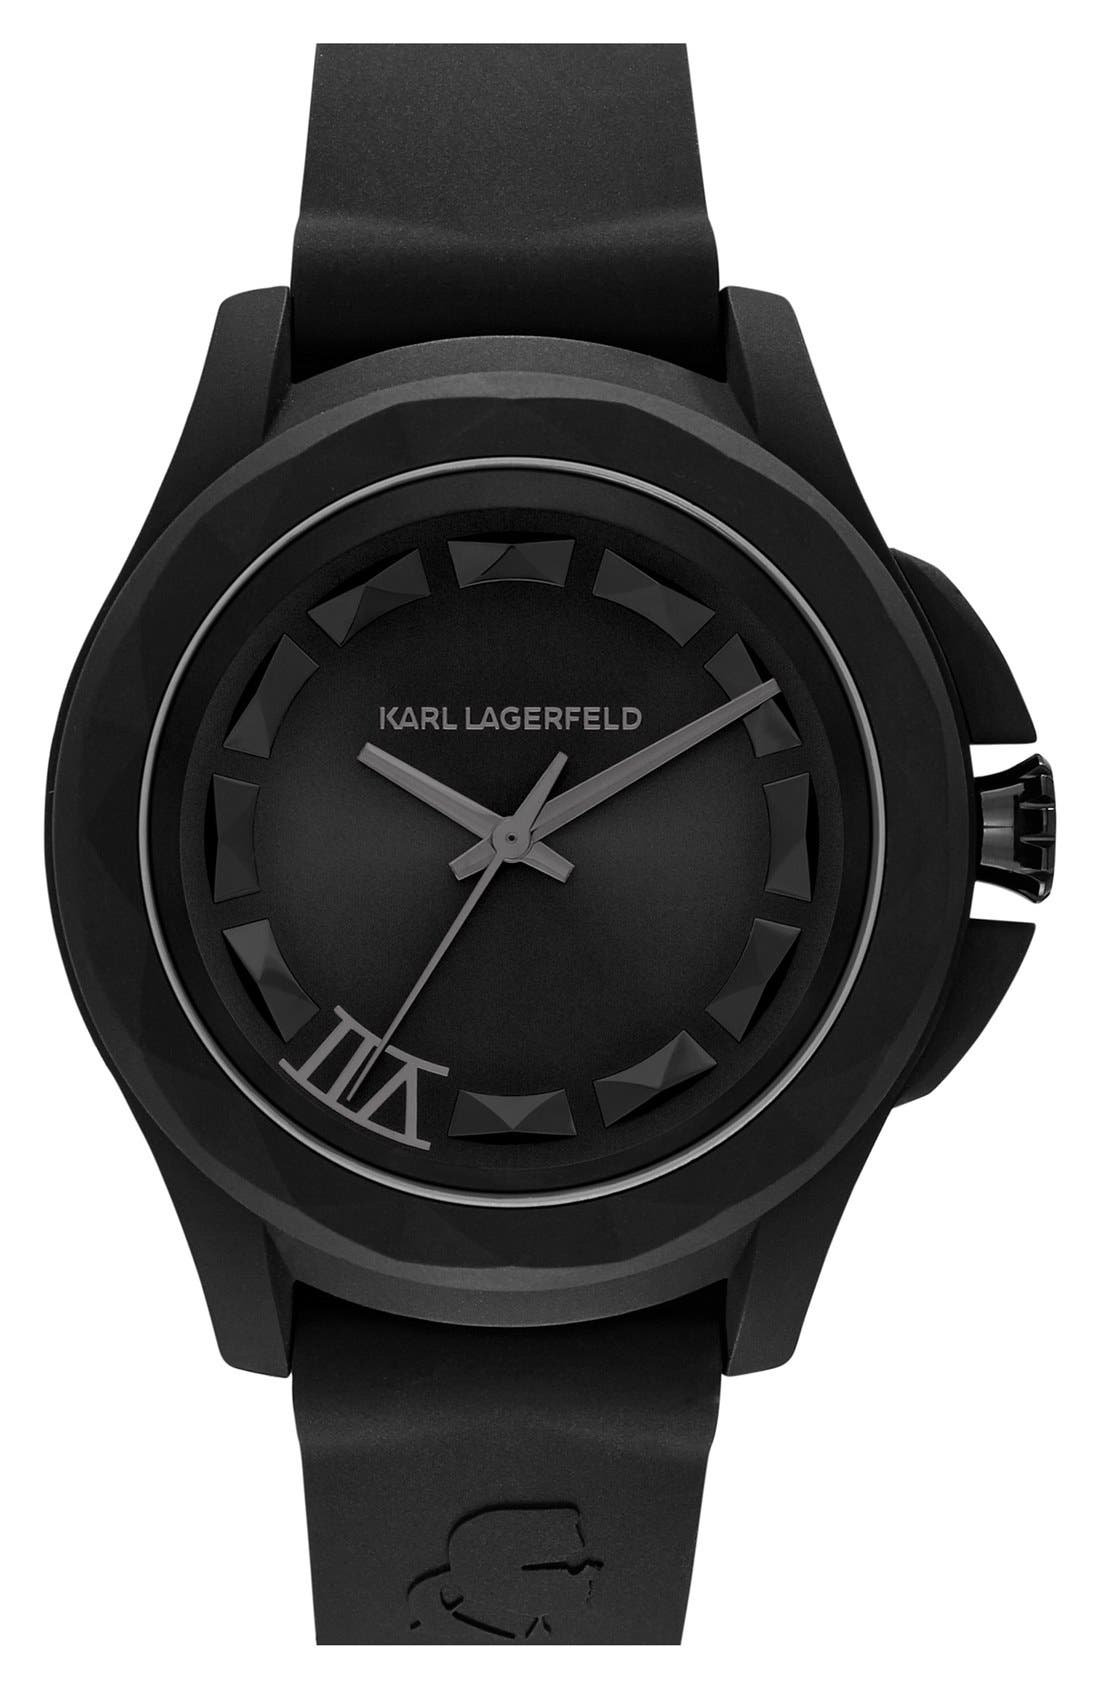 Main Image - KARL LAGERFELD '7' Beveled Bezel Silicone Strap Watch, 44mm